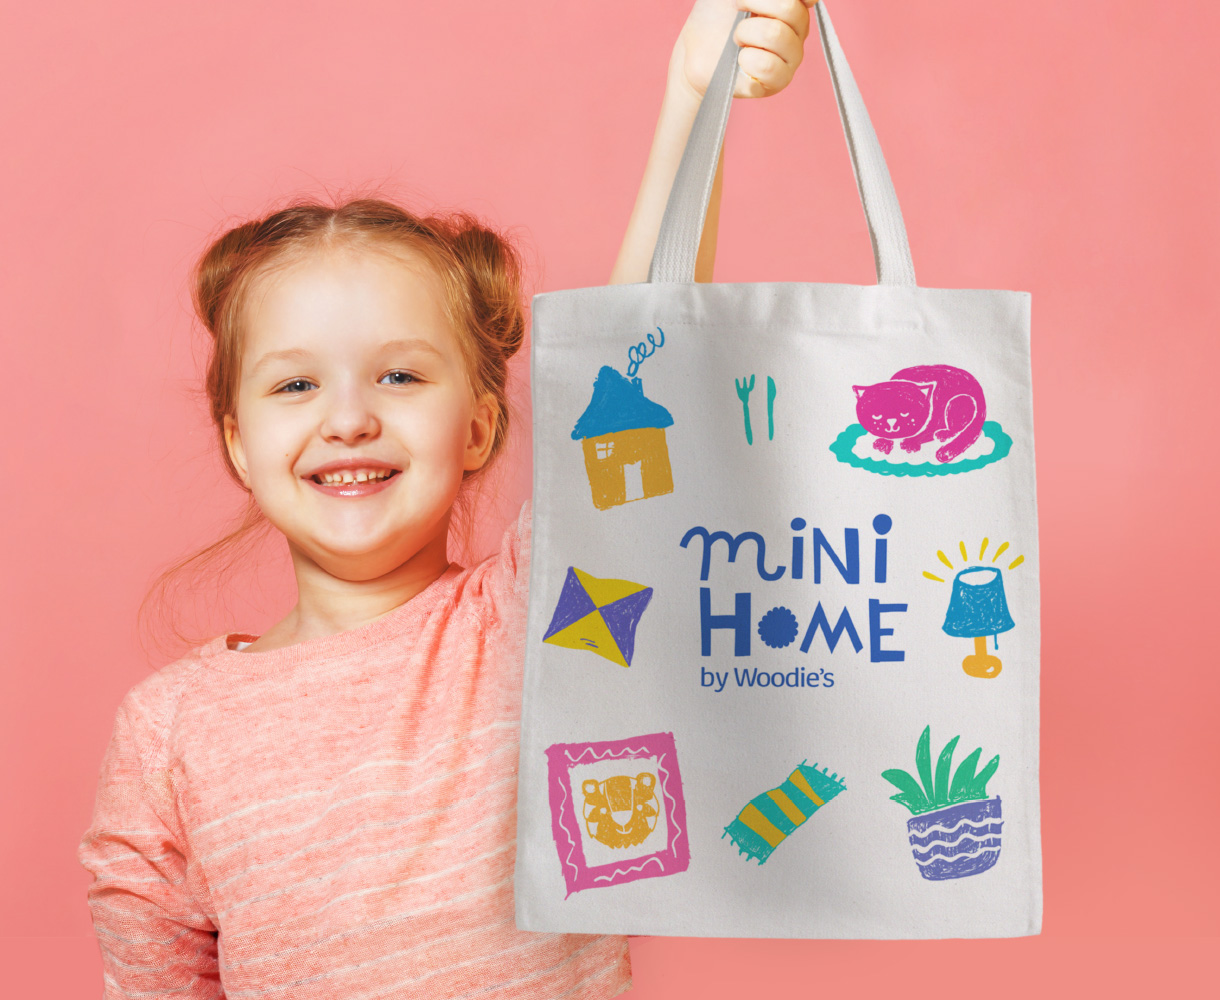 Principle Brand Design Dublin, Mini Home by Woodie's, Children's Homeware Range Branding, Tote Bag with Custom Illustration